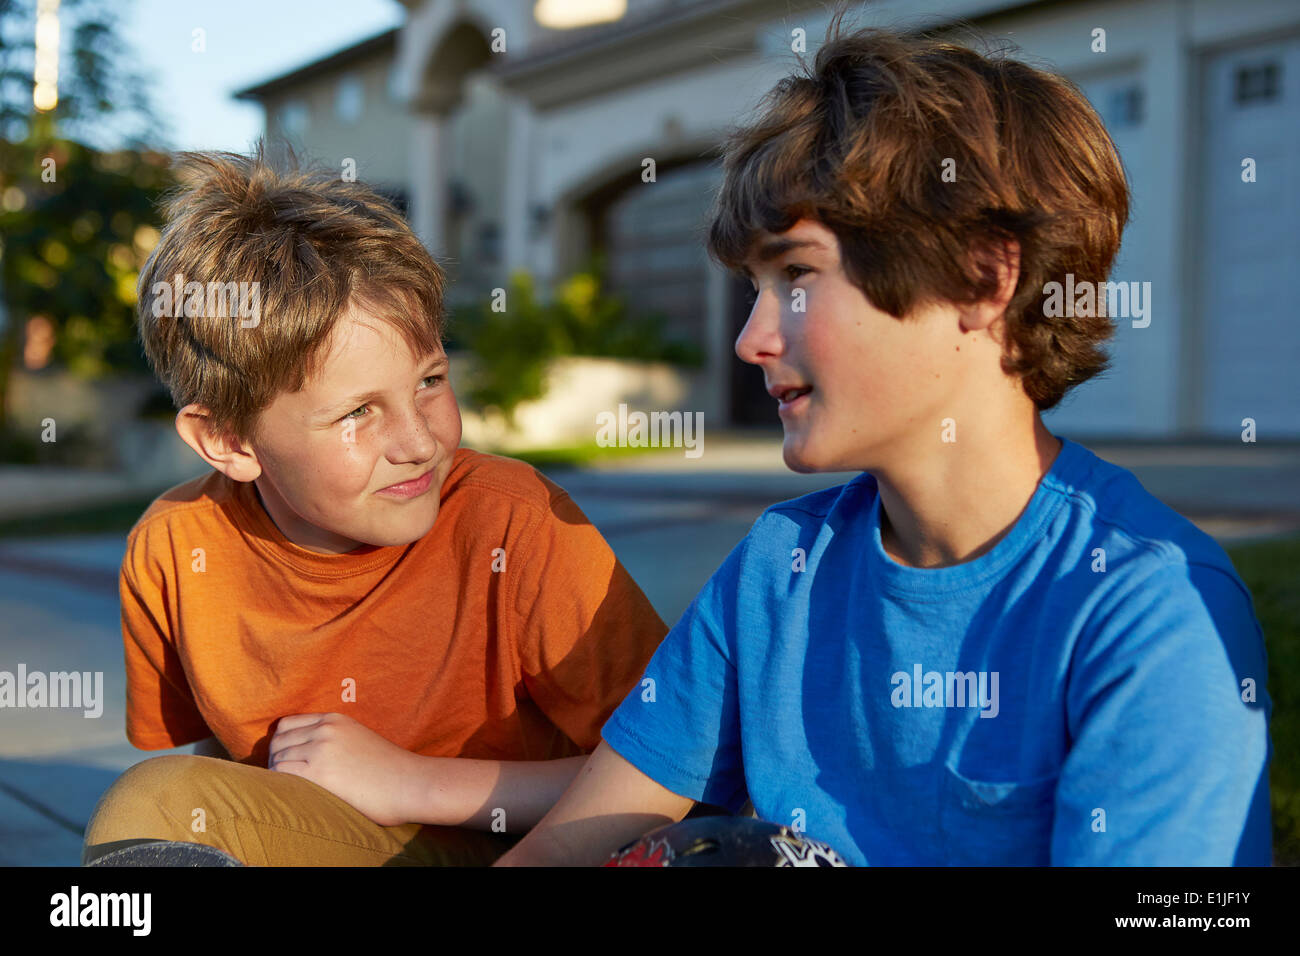 Two boys talking - Stock Image